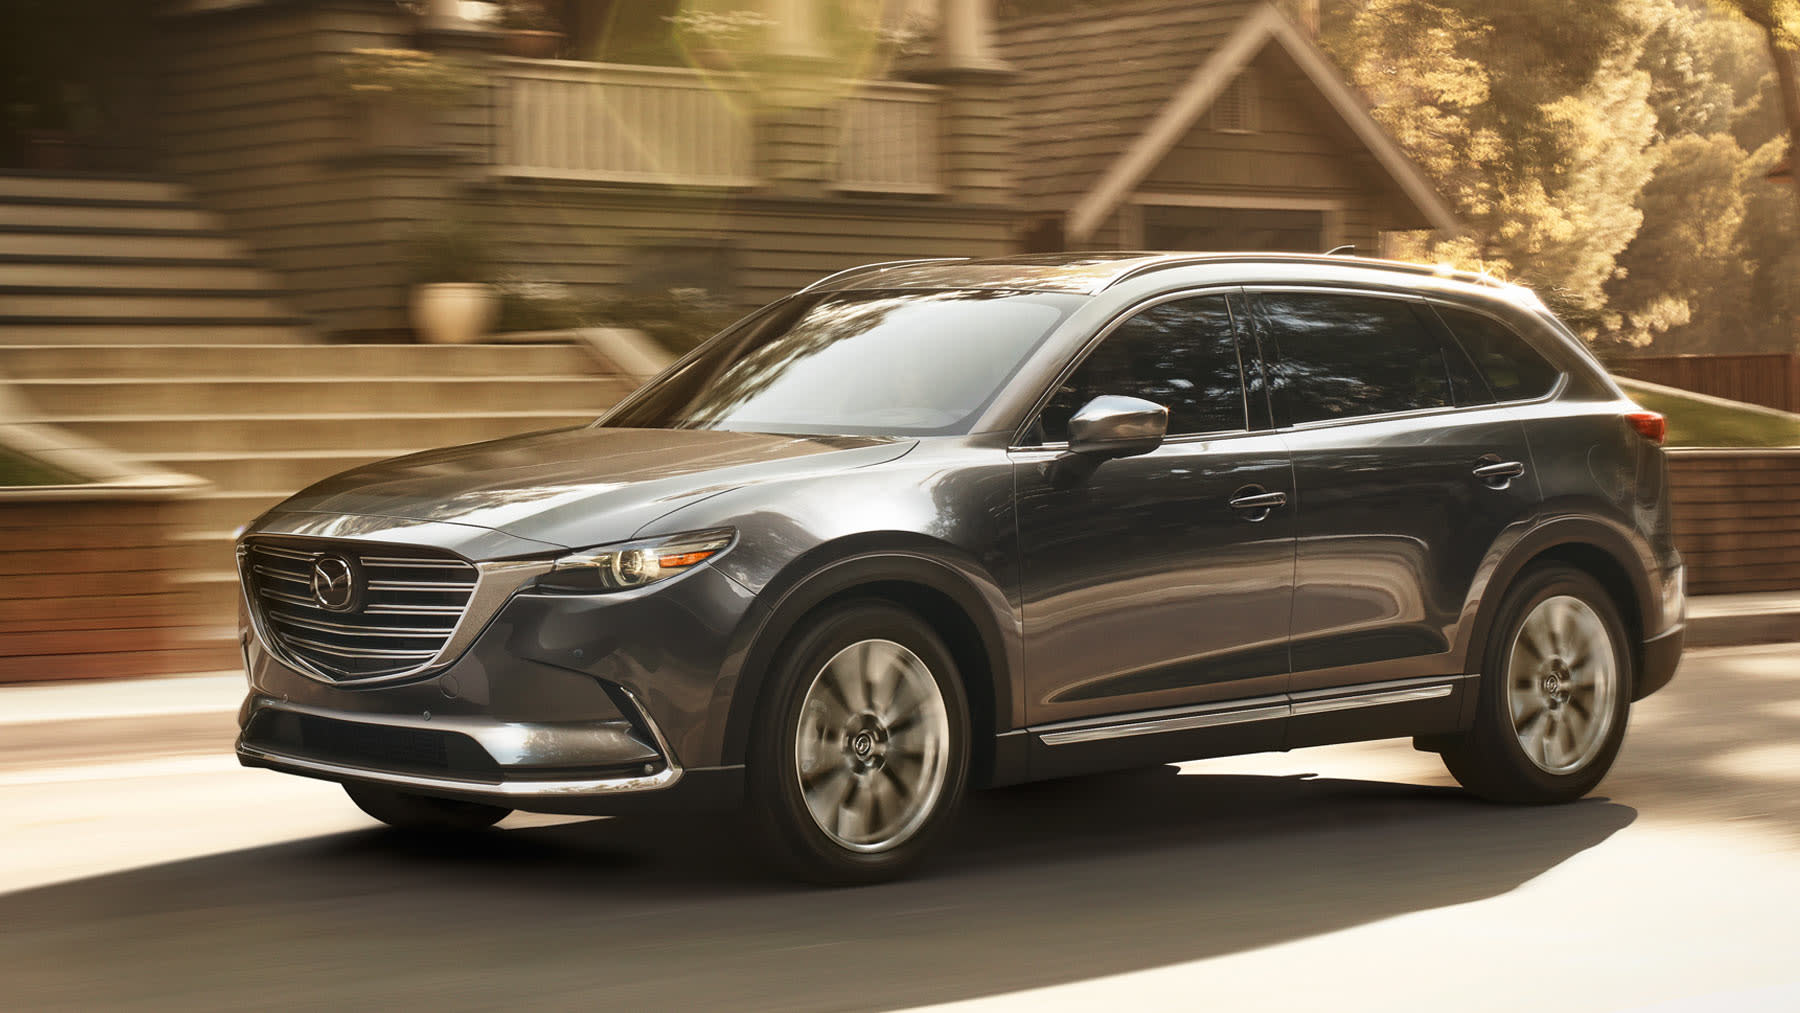 2018 Mazda Cx 9 Leasing Near Augusta Ga Gerald Jones Mazda